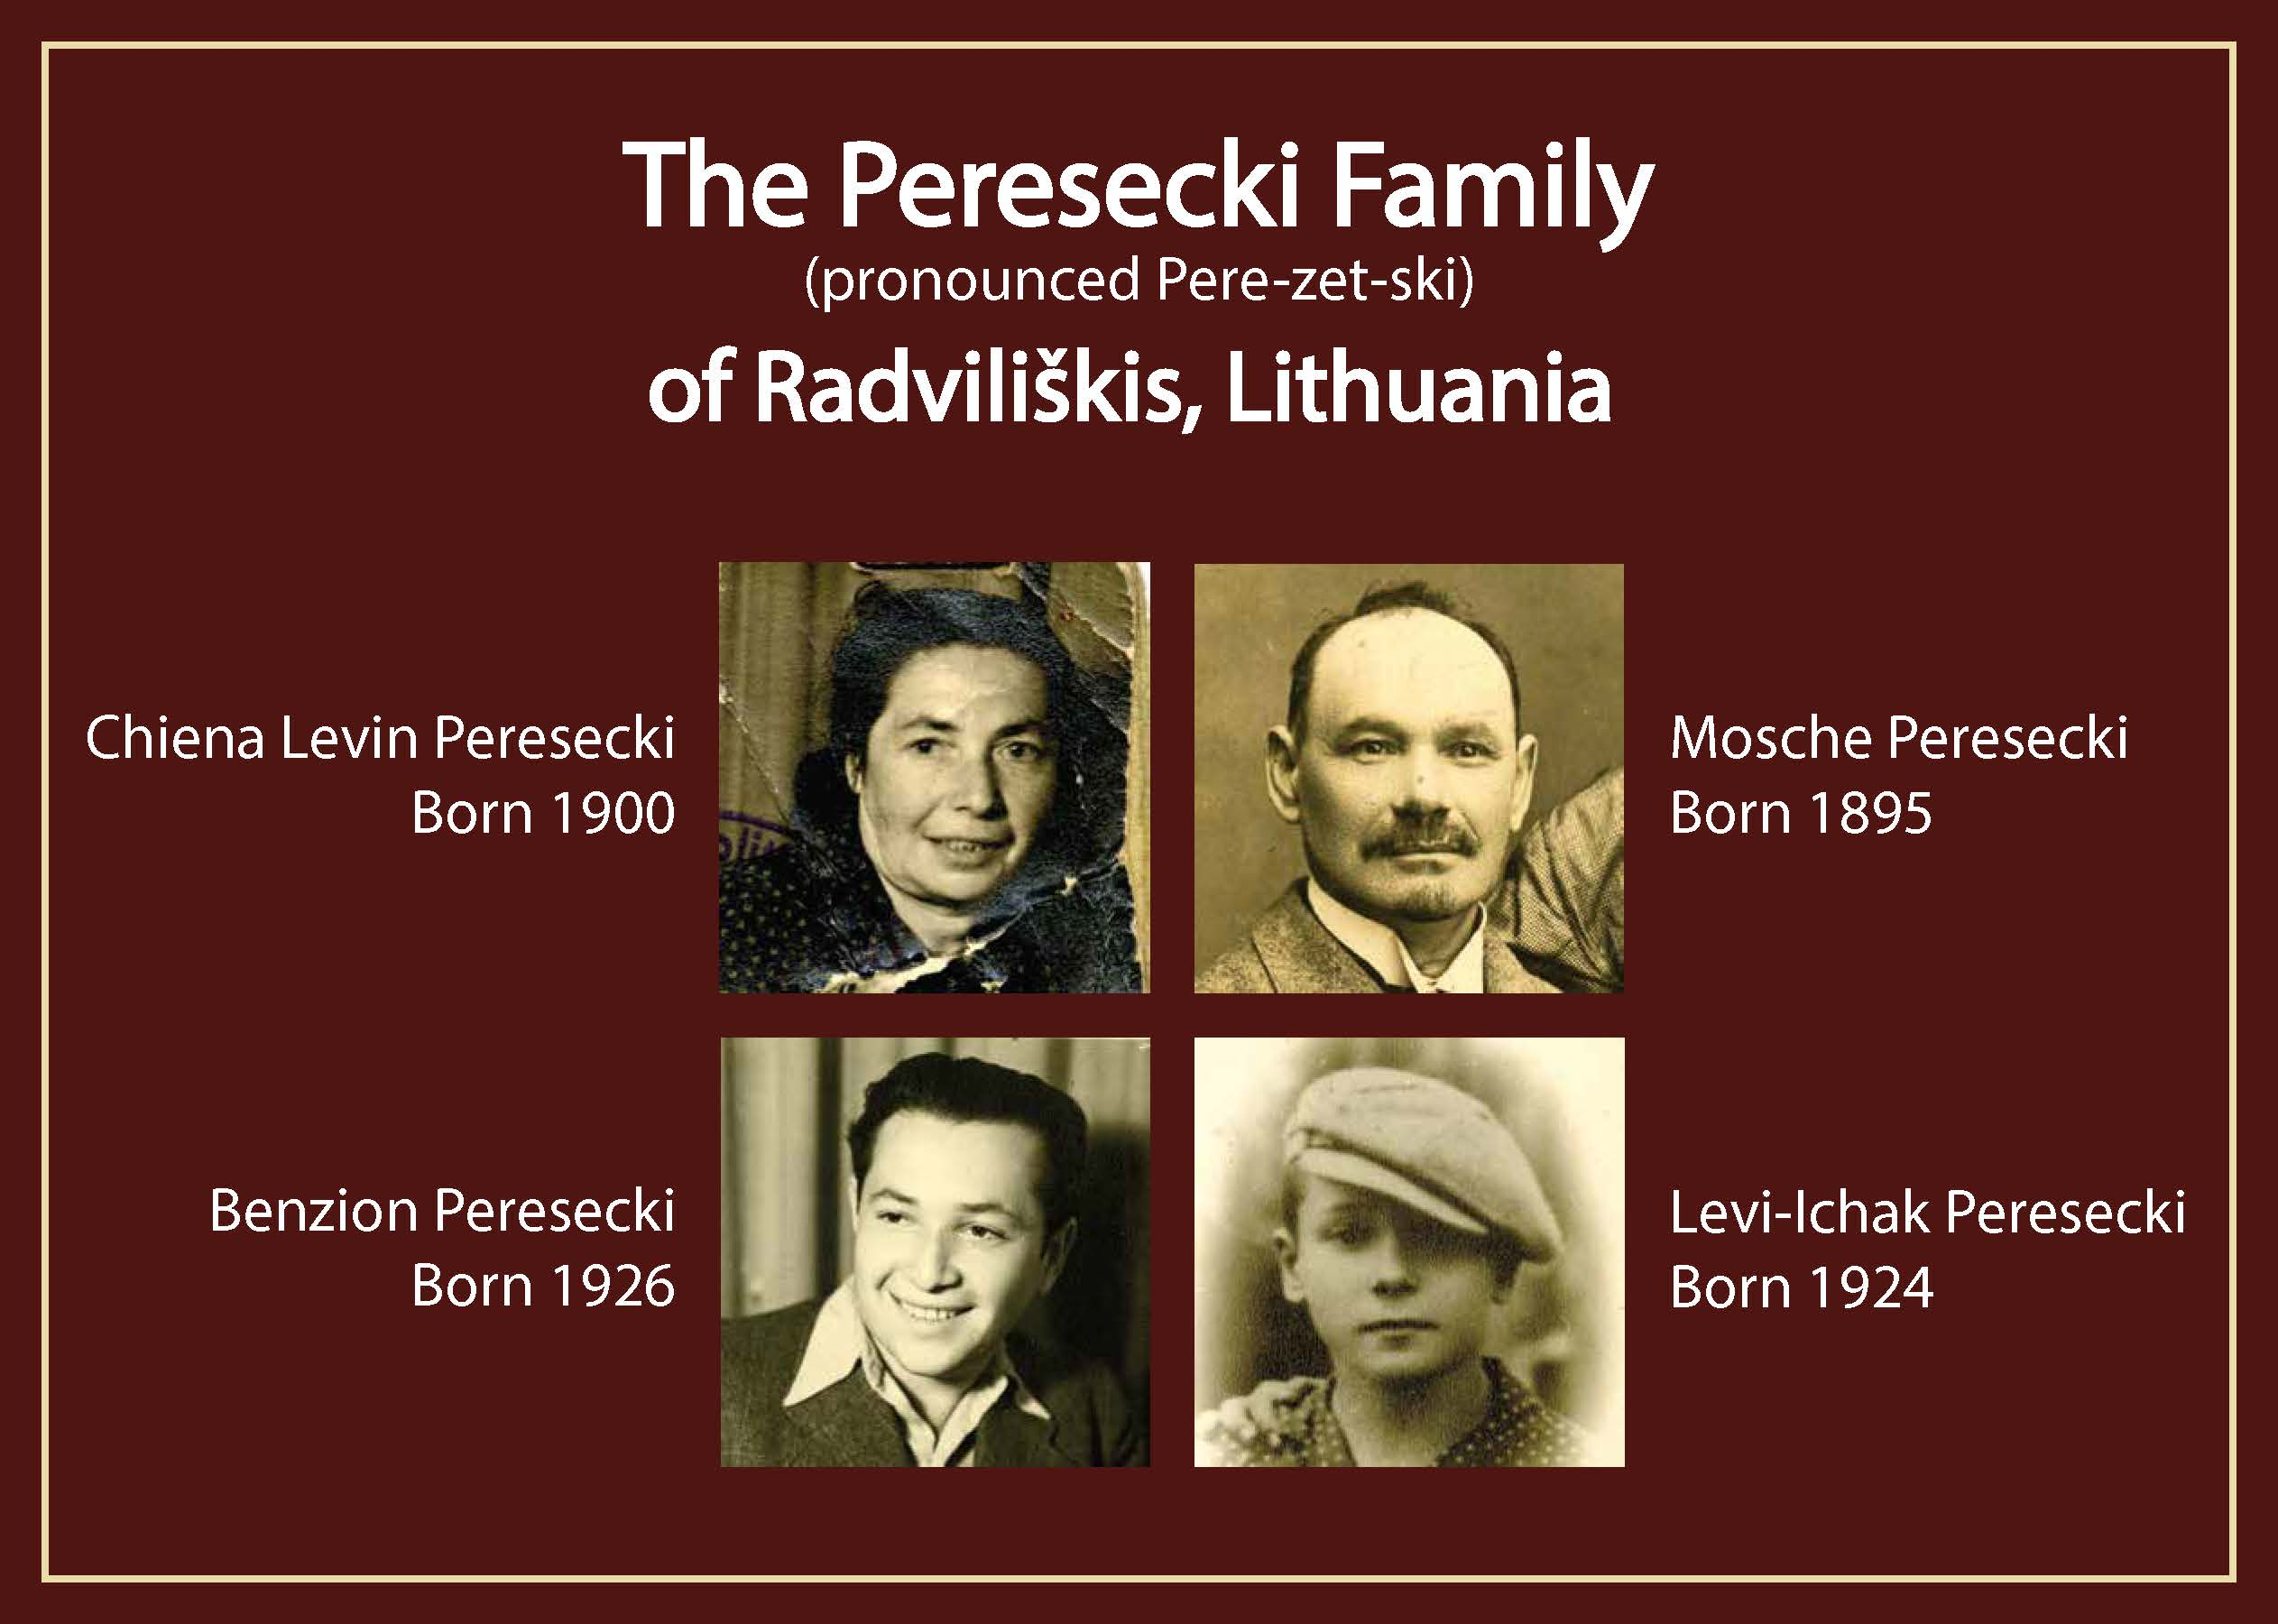 The Peresecki Family tree, including Ben, his mother Chiena, his father Mosche, and his brother Levi-Ichak